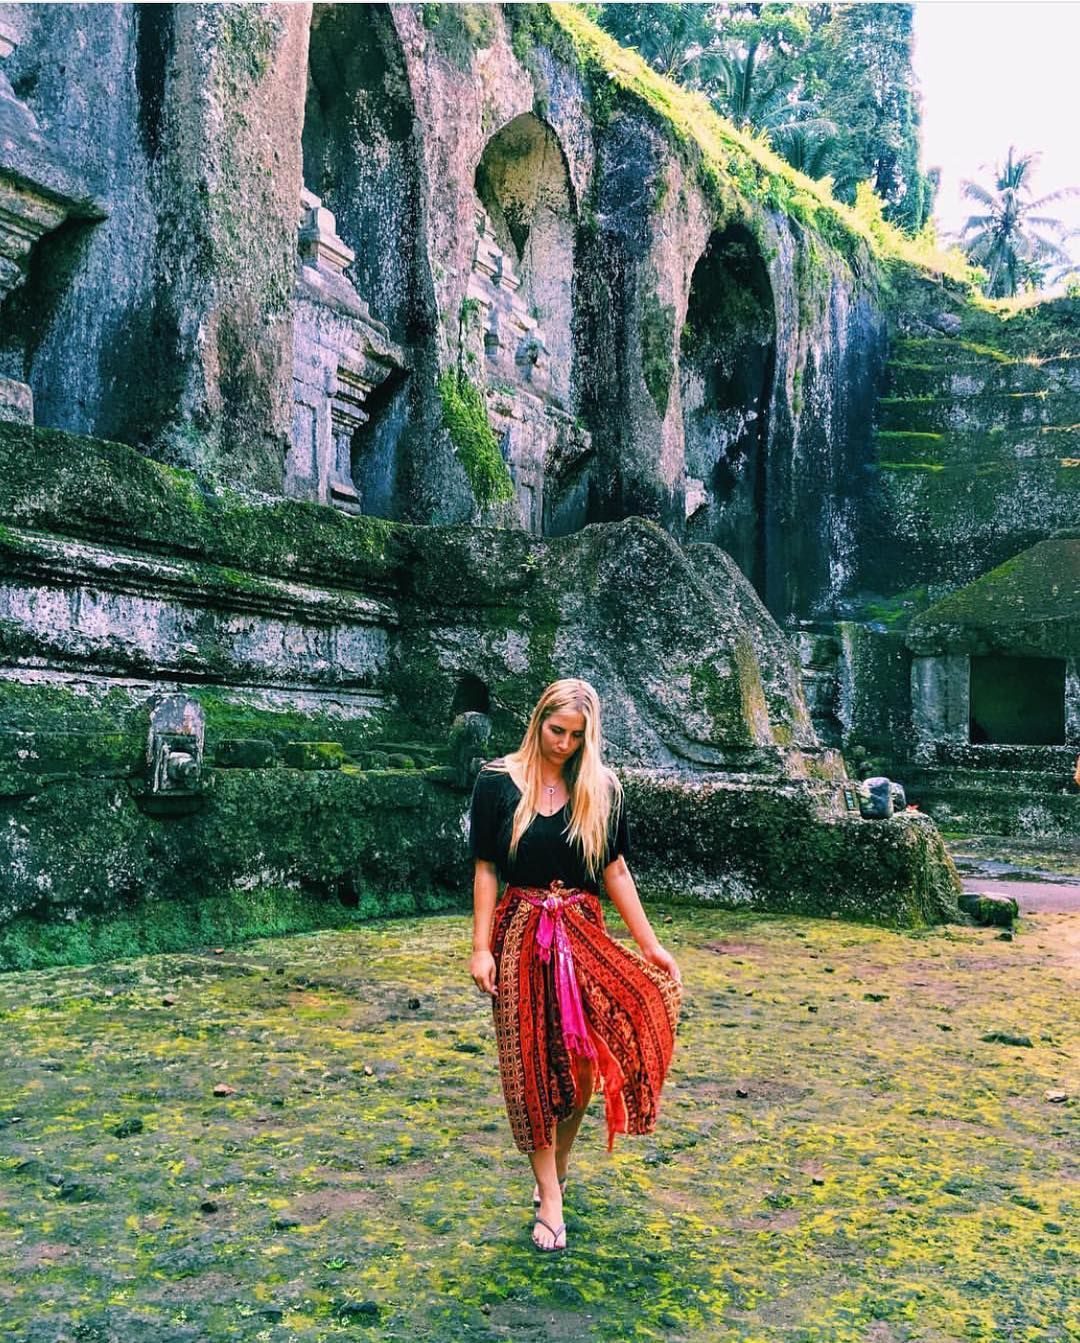 Wish we were there: Our little Brooke currently in Bali  @brooke_baldwinn wearing a crescent lariat  by Long Lost Jewelry